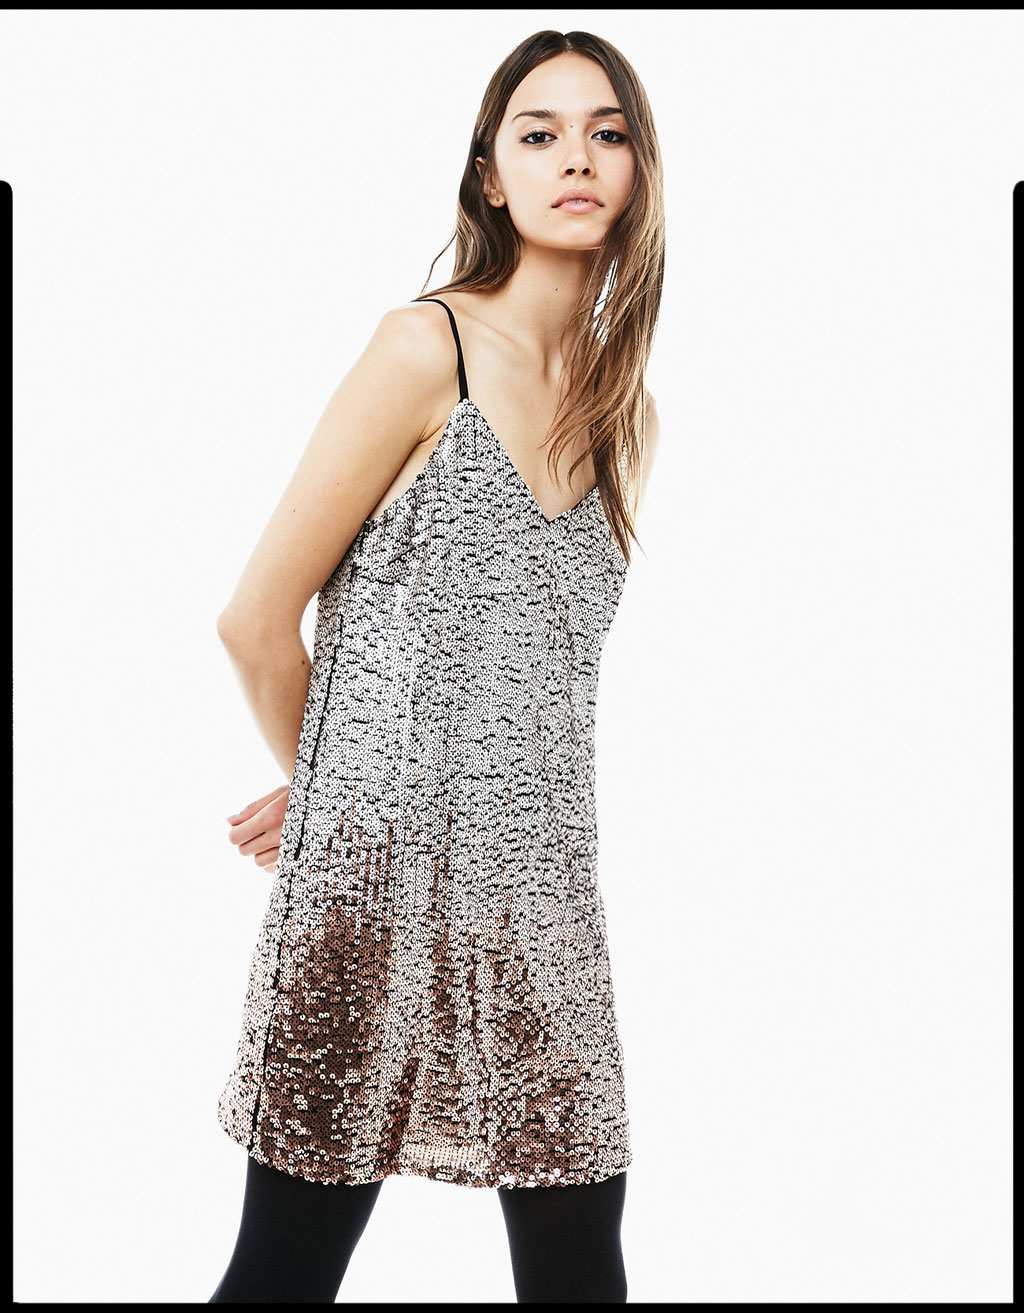 Sequin dress with metallic ombré detail